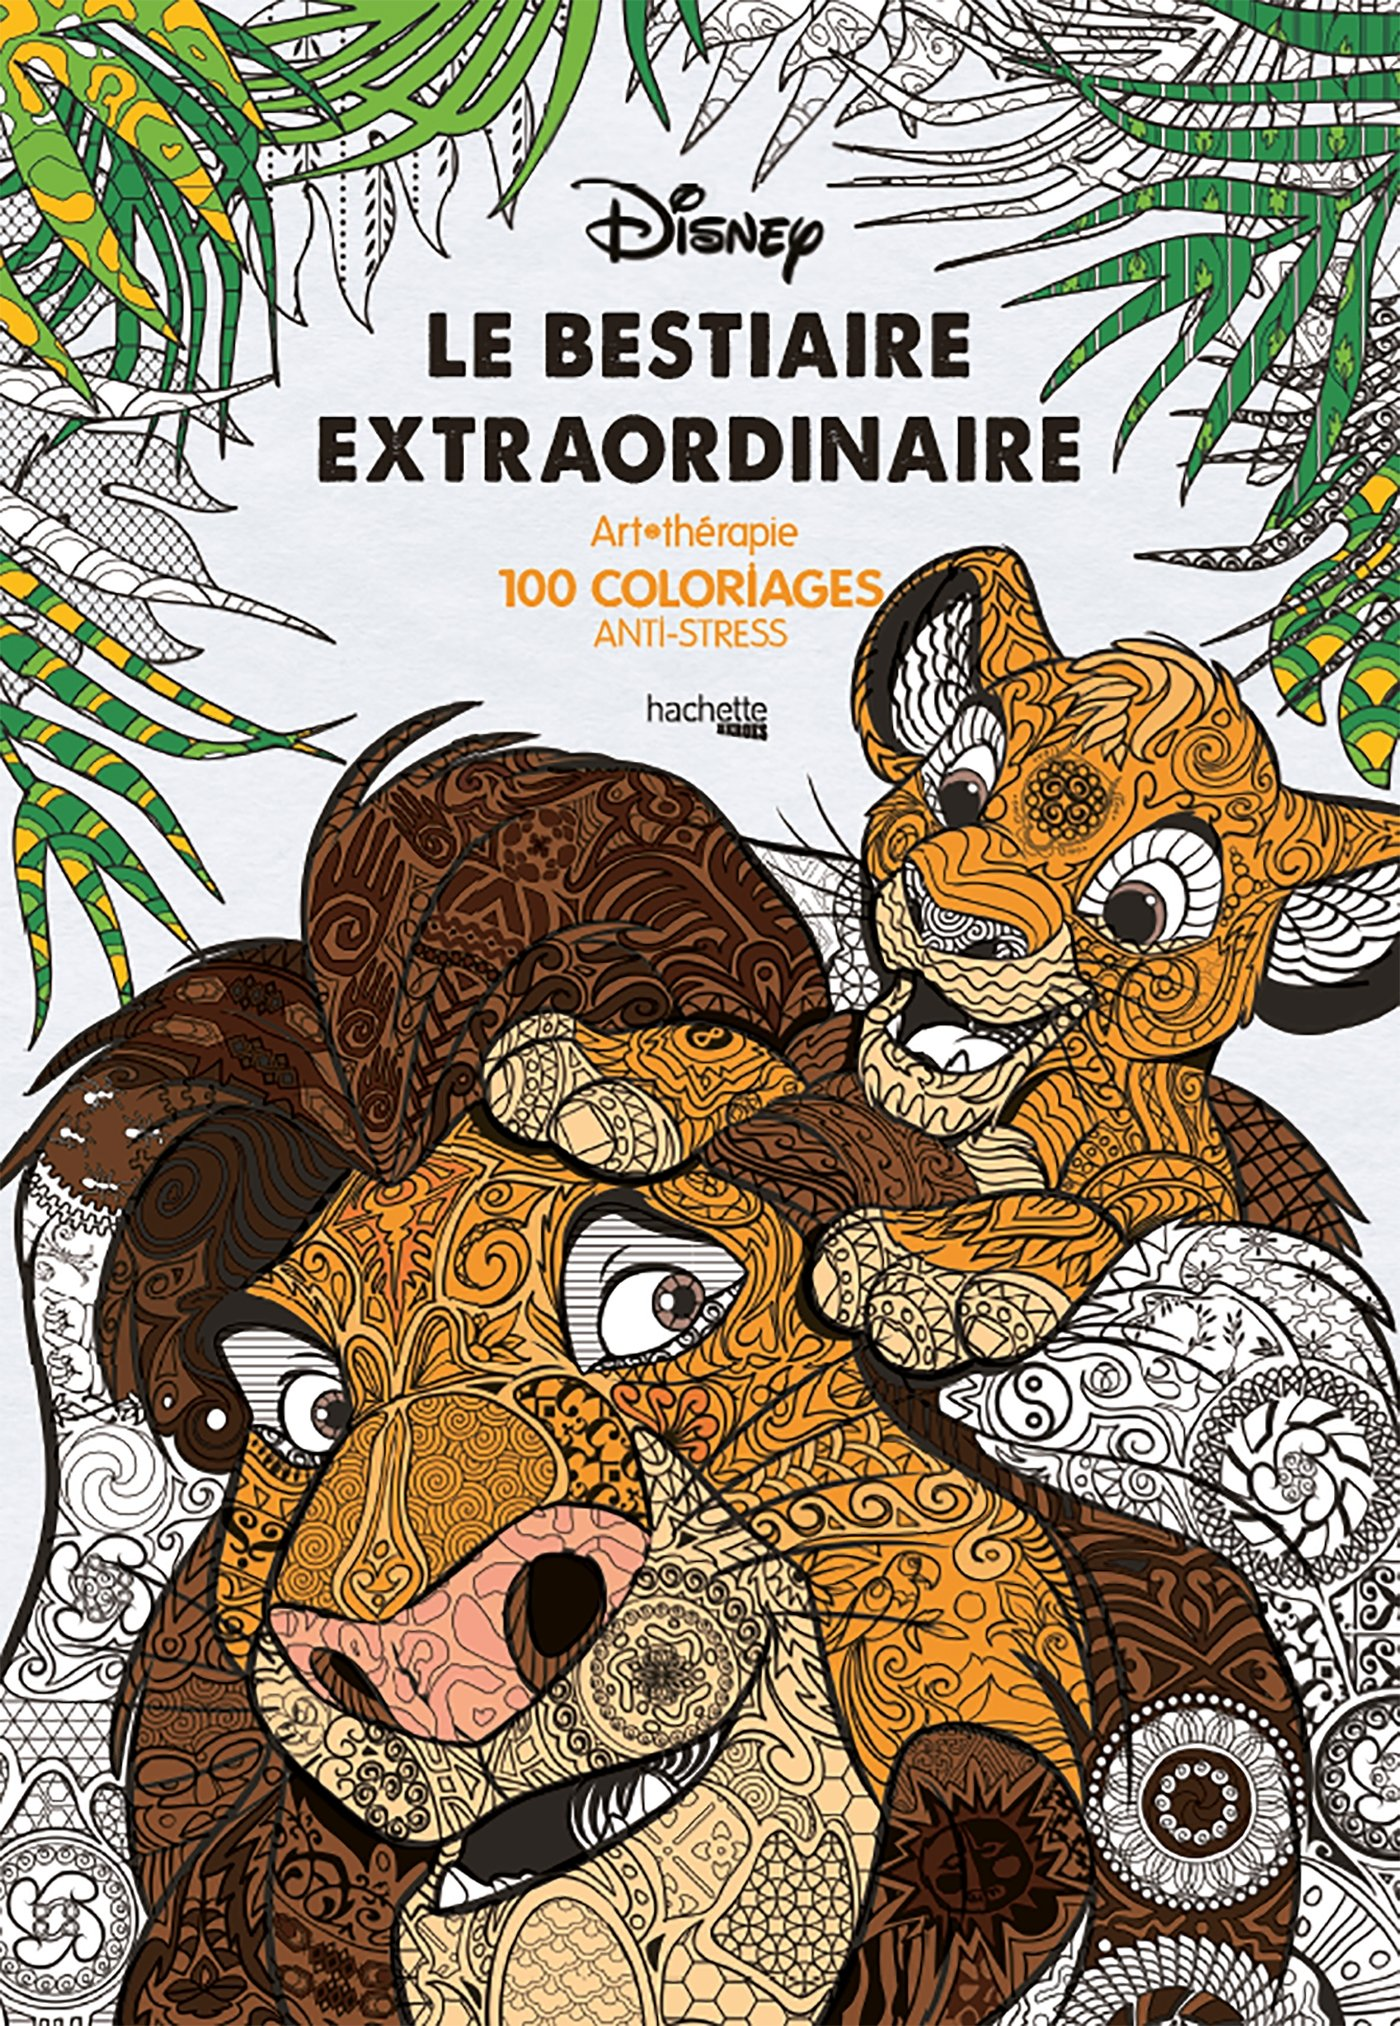 Disney Le Bestiaire Extraordinaire Art Therapie 100 Coloriages Anti Stress Pour Adultes Coloring Book For Adults French Edition Jean Luc